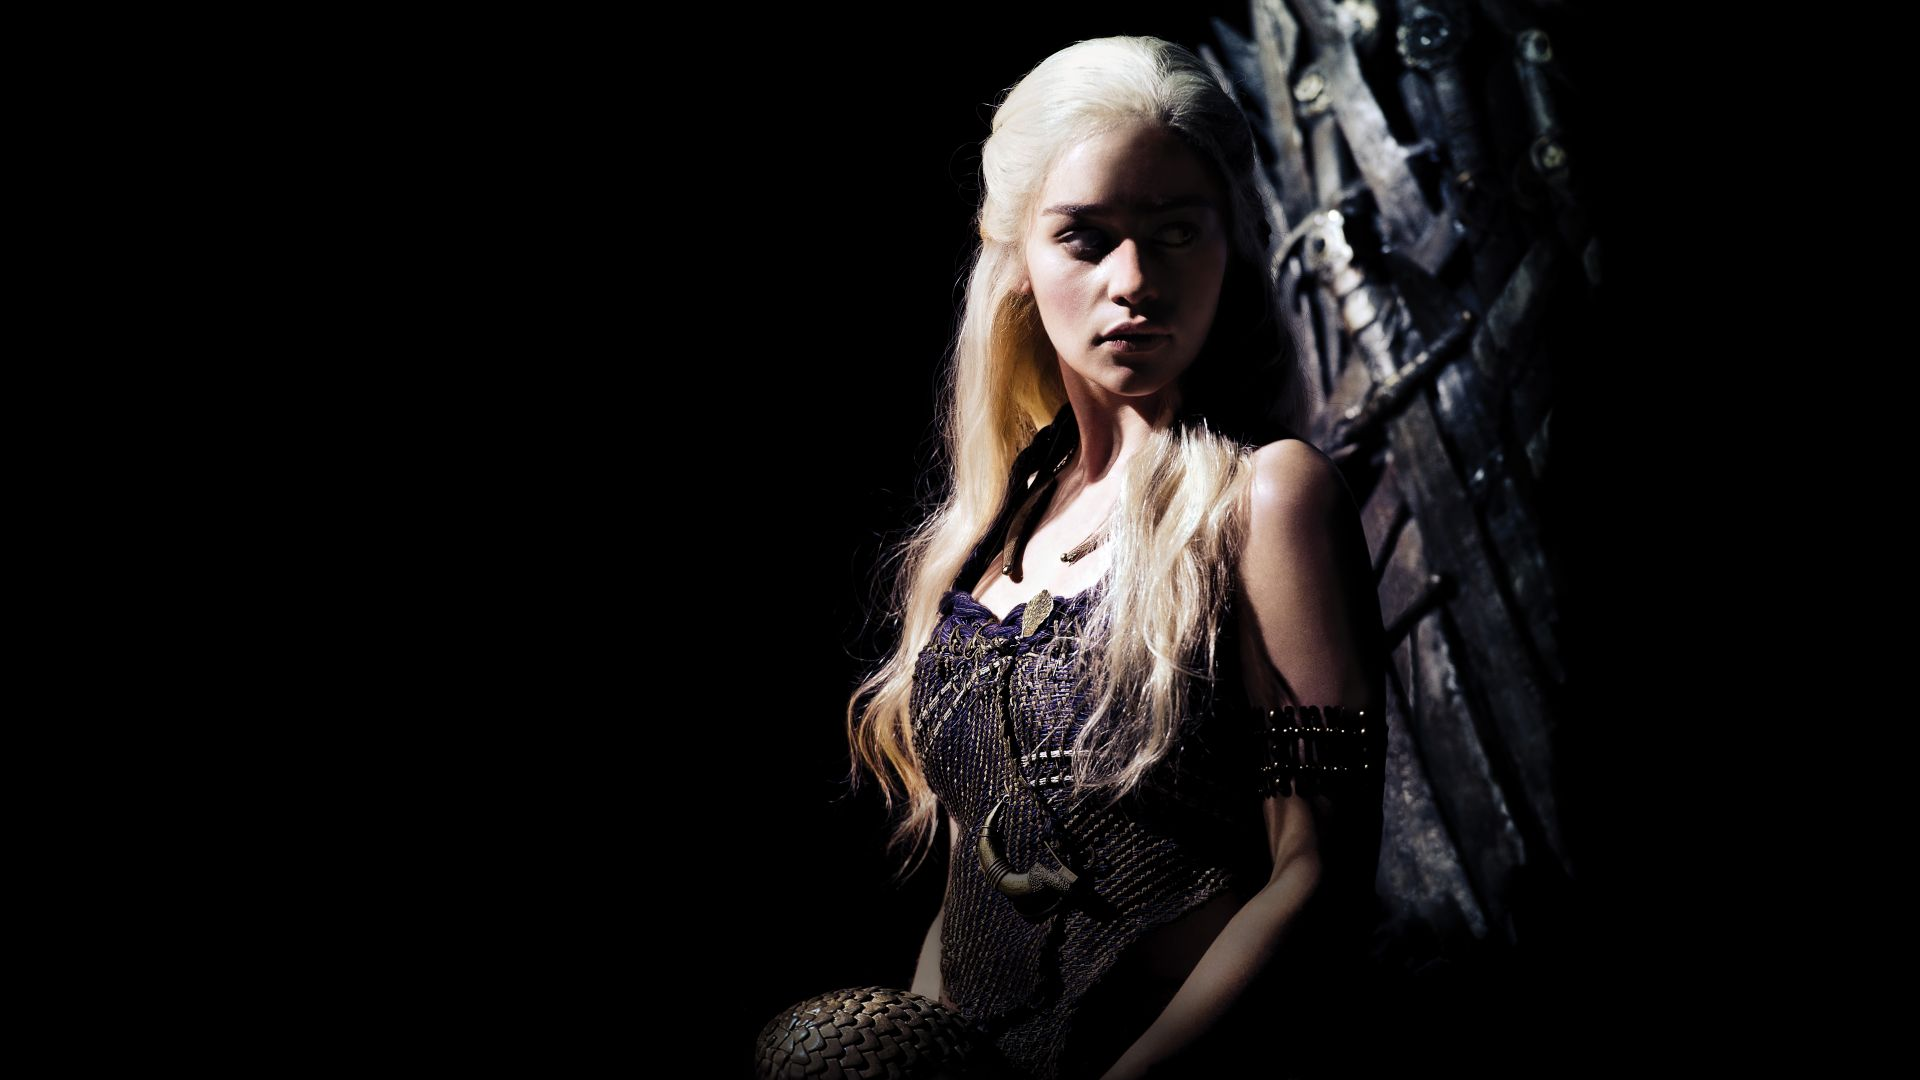 Game of Thrones, Daenerys Targaryen, Emilia Clarke, TV Series, 8k (horizontal)